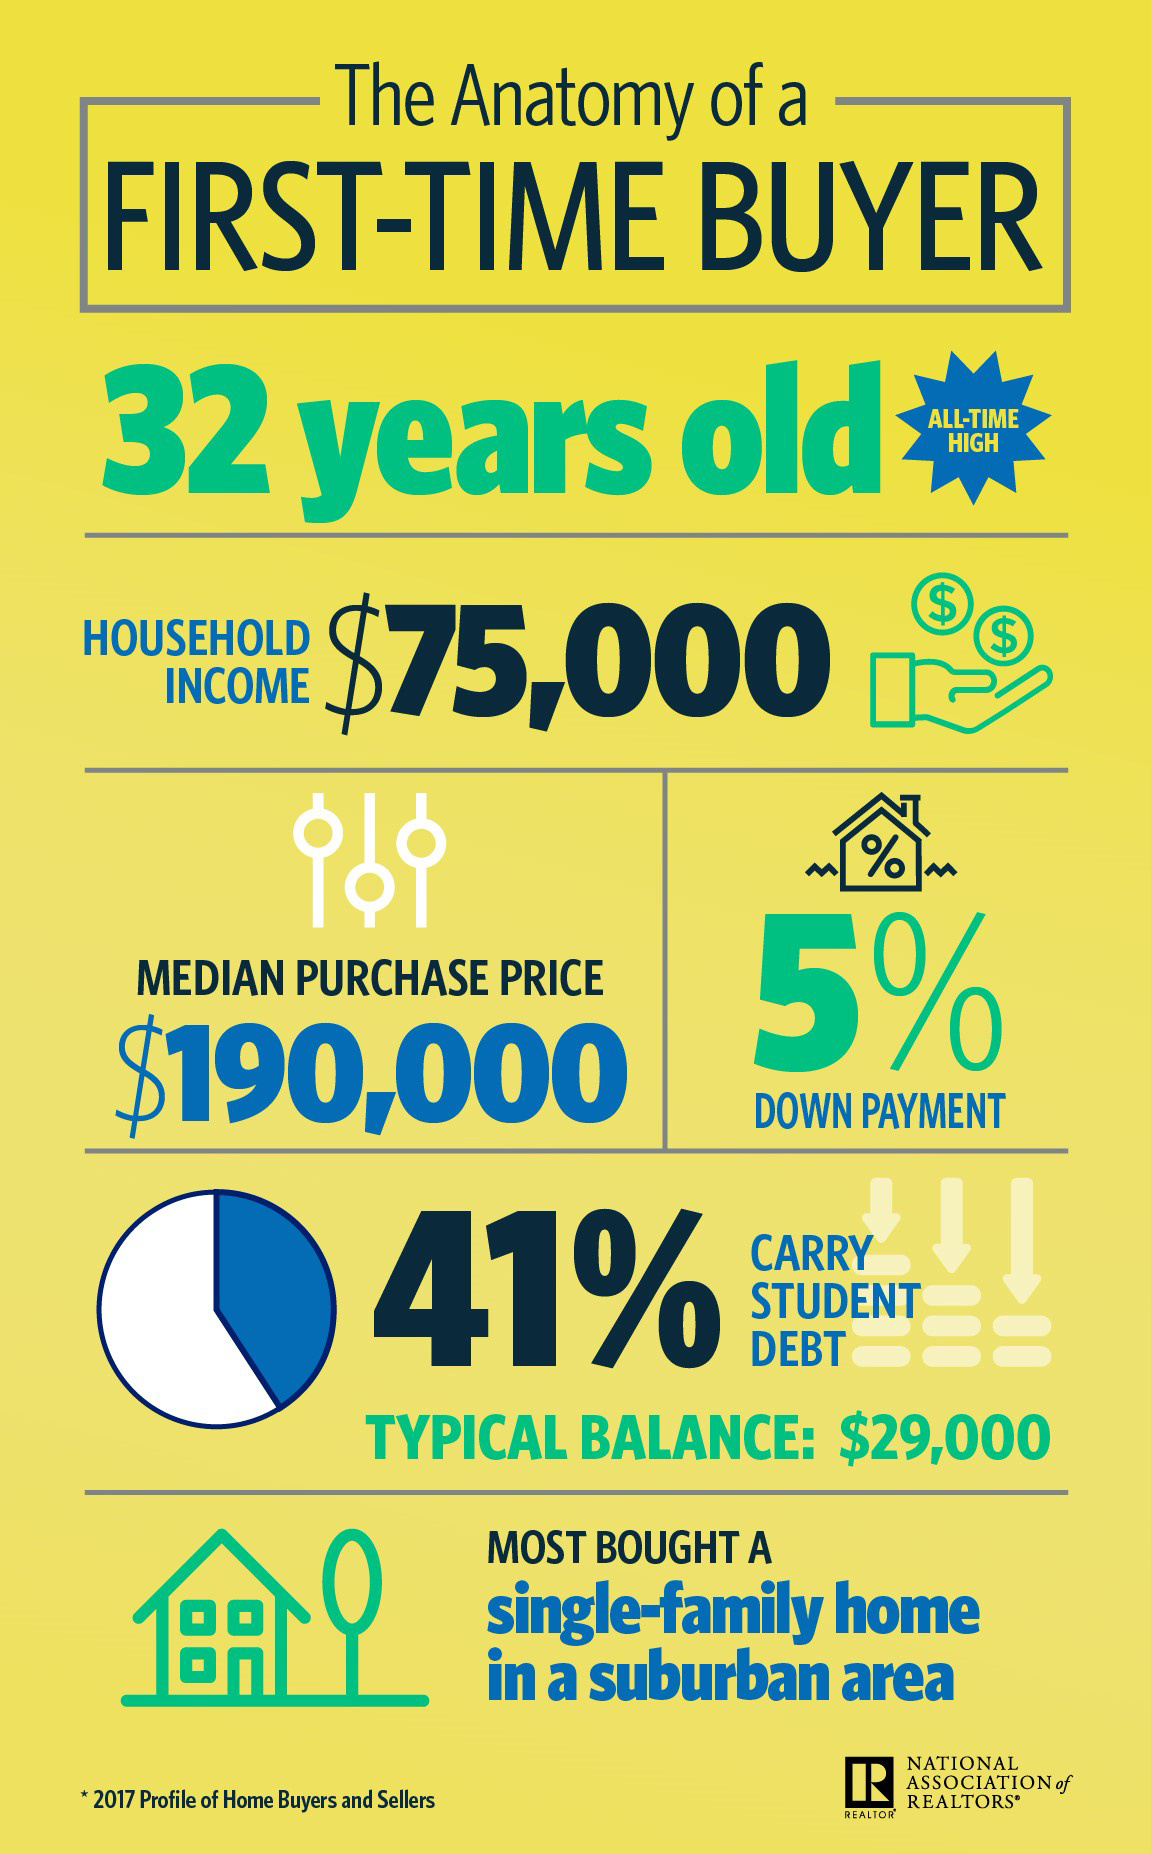 Infographic: The Anatomy of a First-Time Buyer